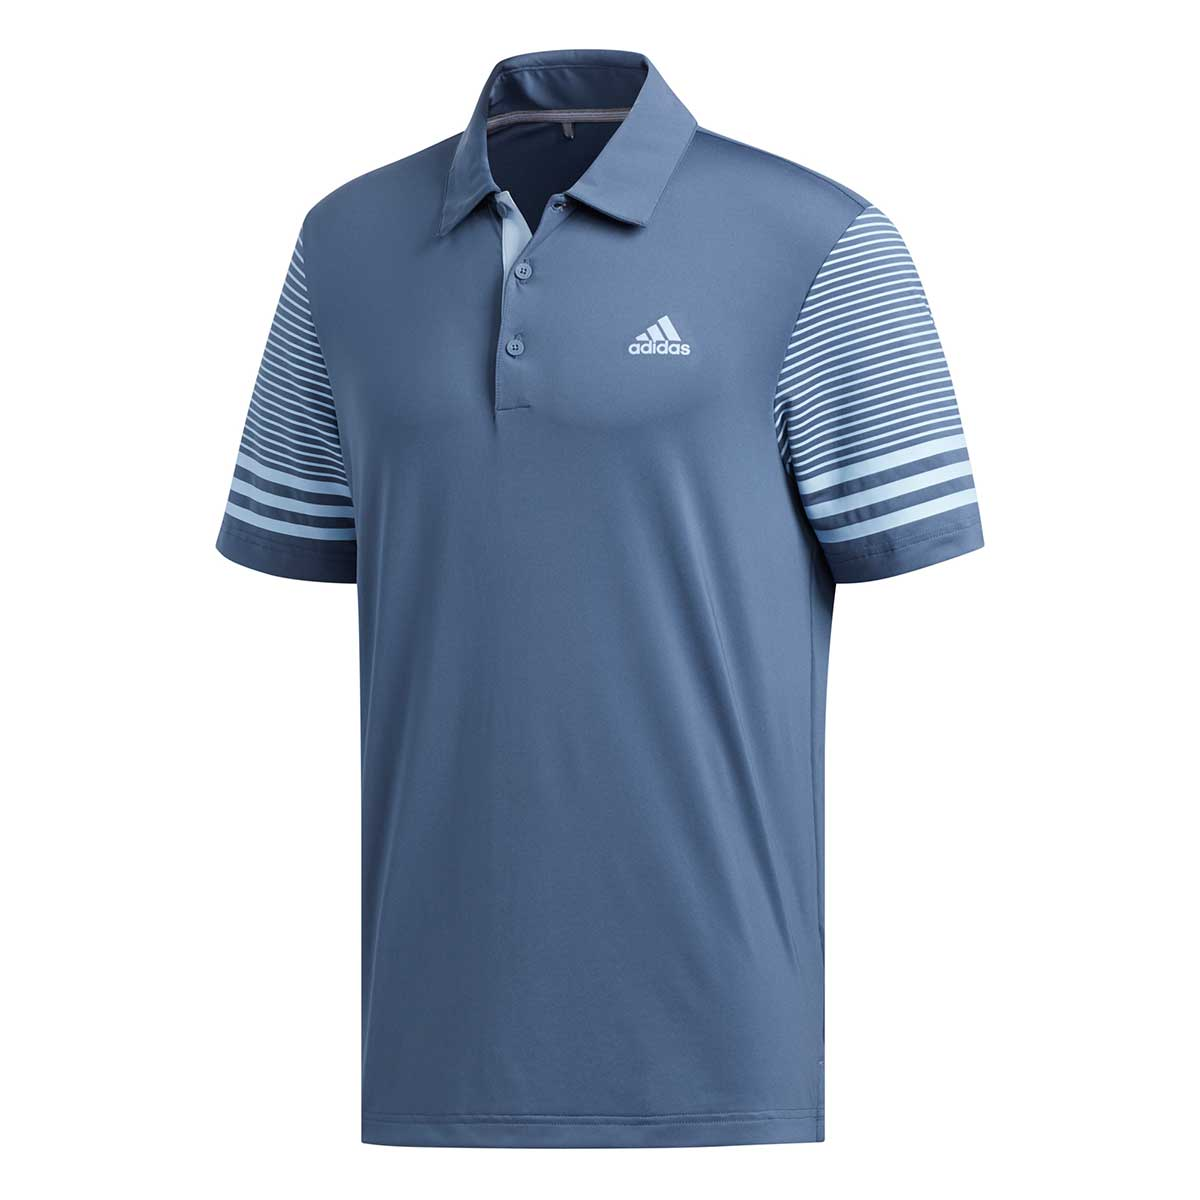 Adidas Men's Ultimate365 Gradient Tech Ink Polo